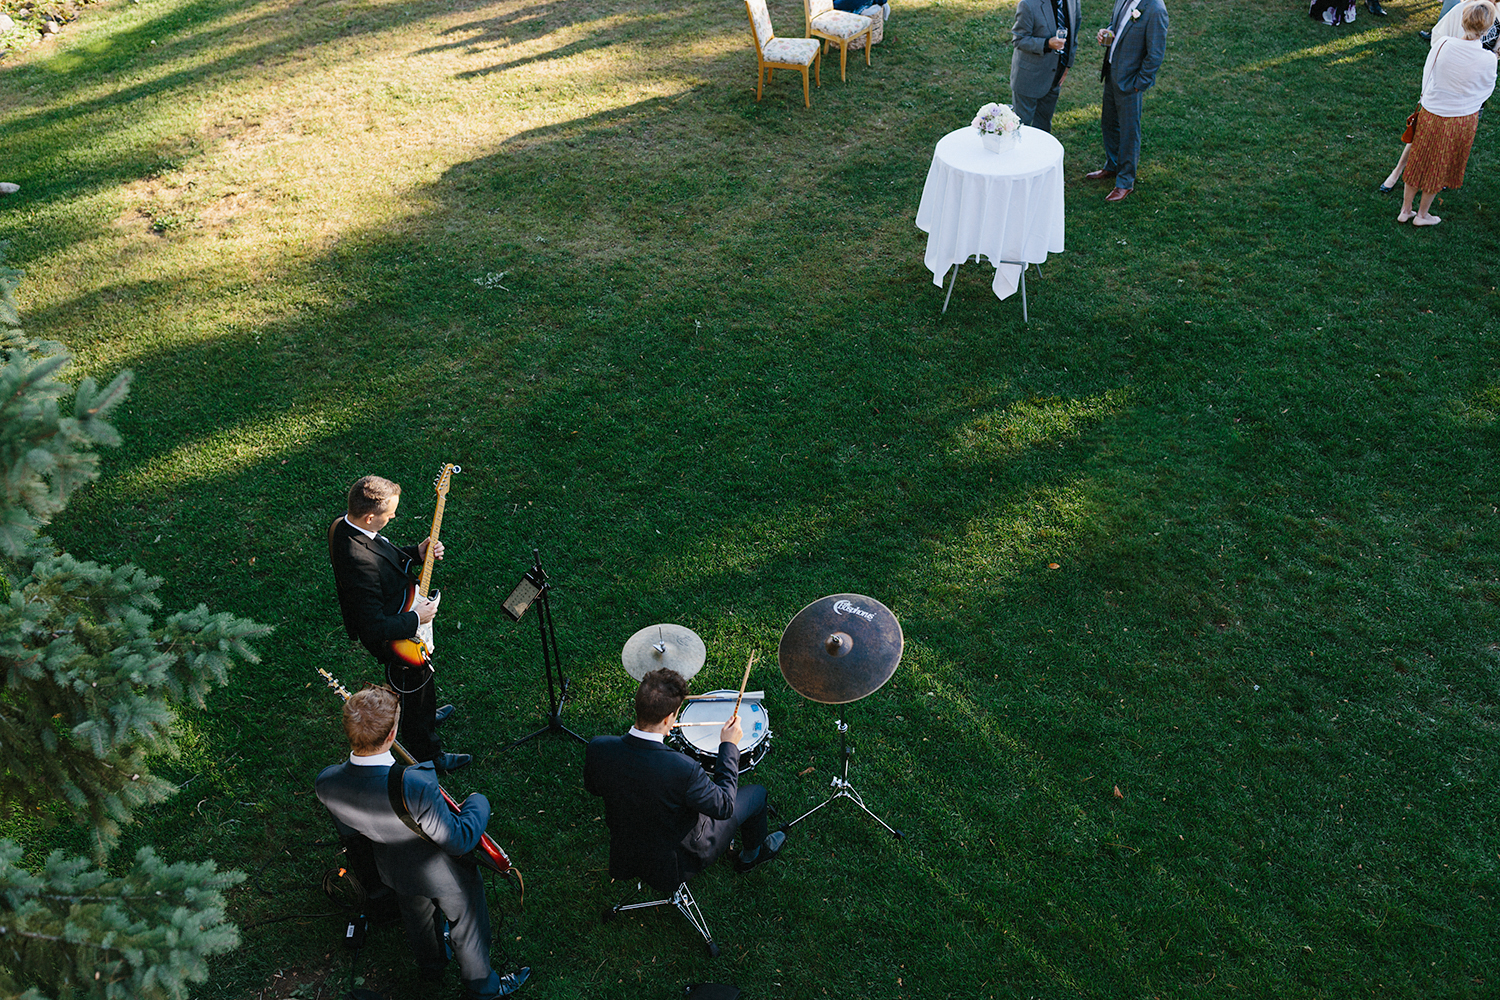 band-playing-during-outdoor-cocktail-hour-At-Eganridge-Resort-Venue-Muskoka-Ontario-Wedding-Photography-by-Ryanne-Hollies-Photography-Toronto-Documentary-Wedding-Photographer.jpg